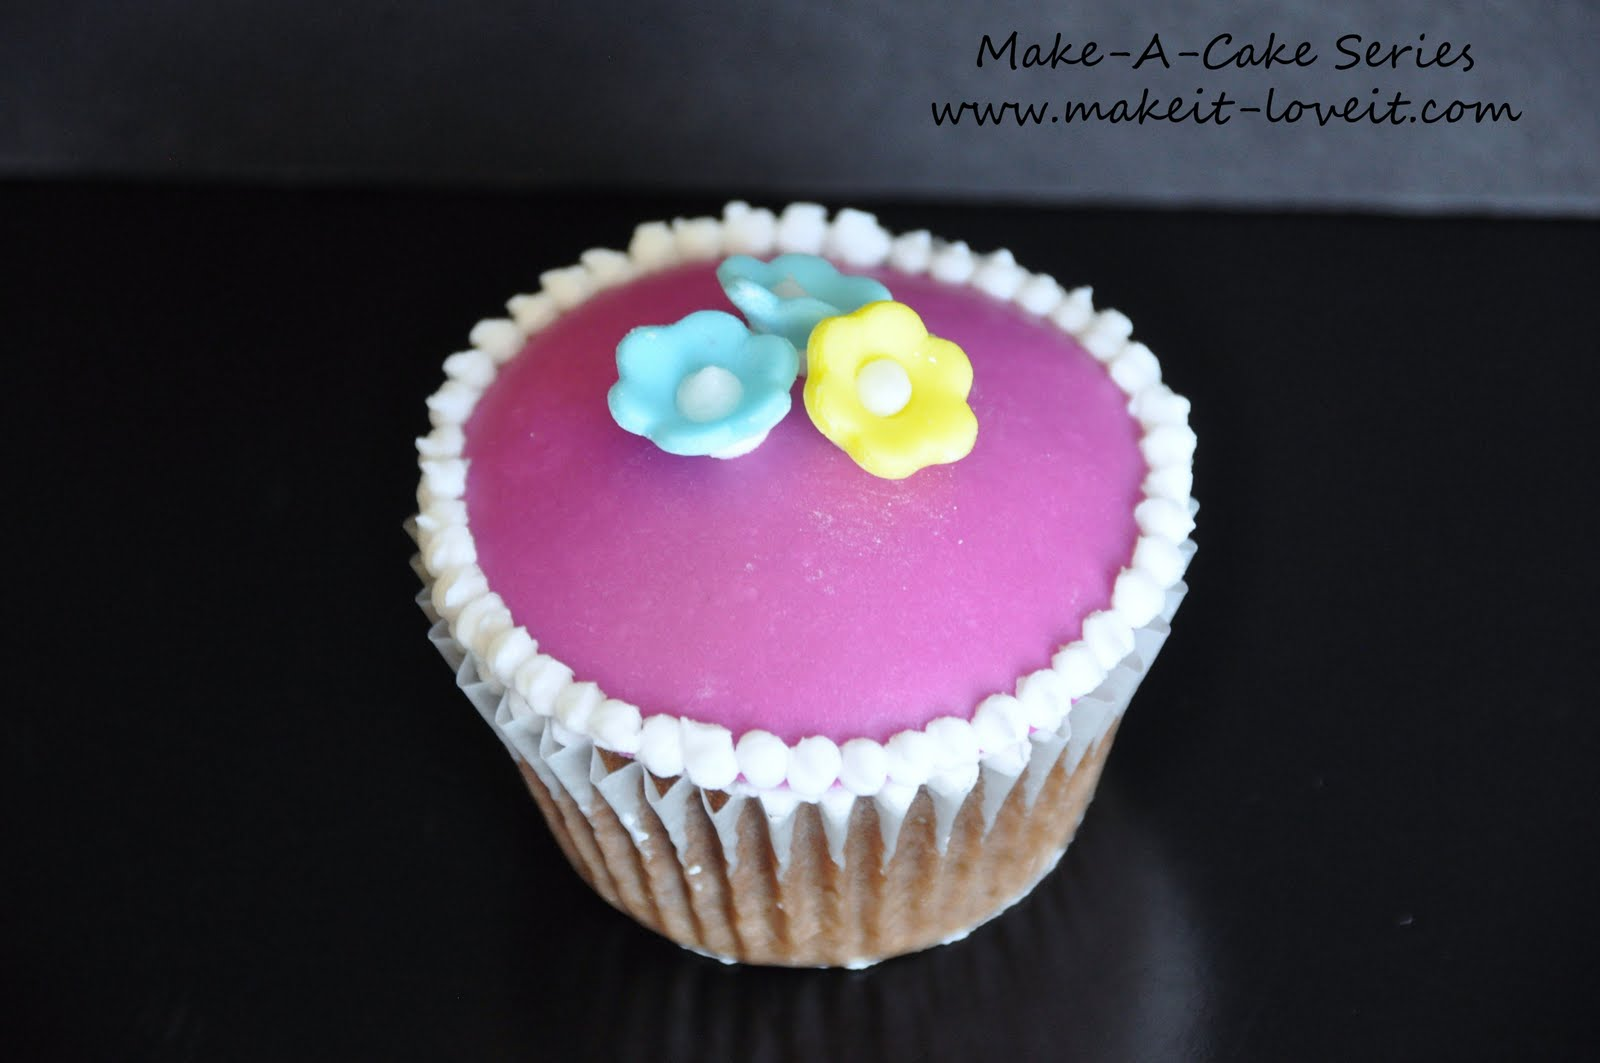 Make-a-Cake Series: Cupcakes – Make It and Love It